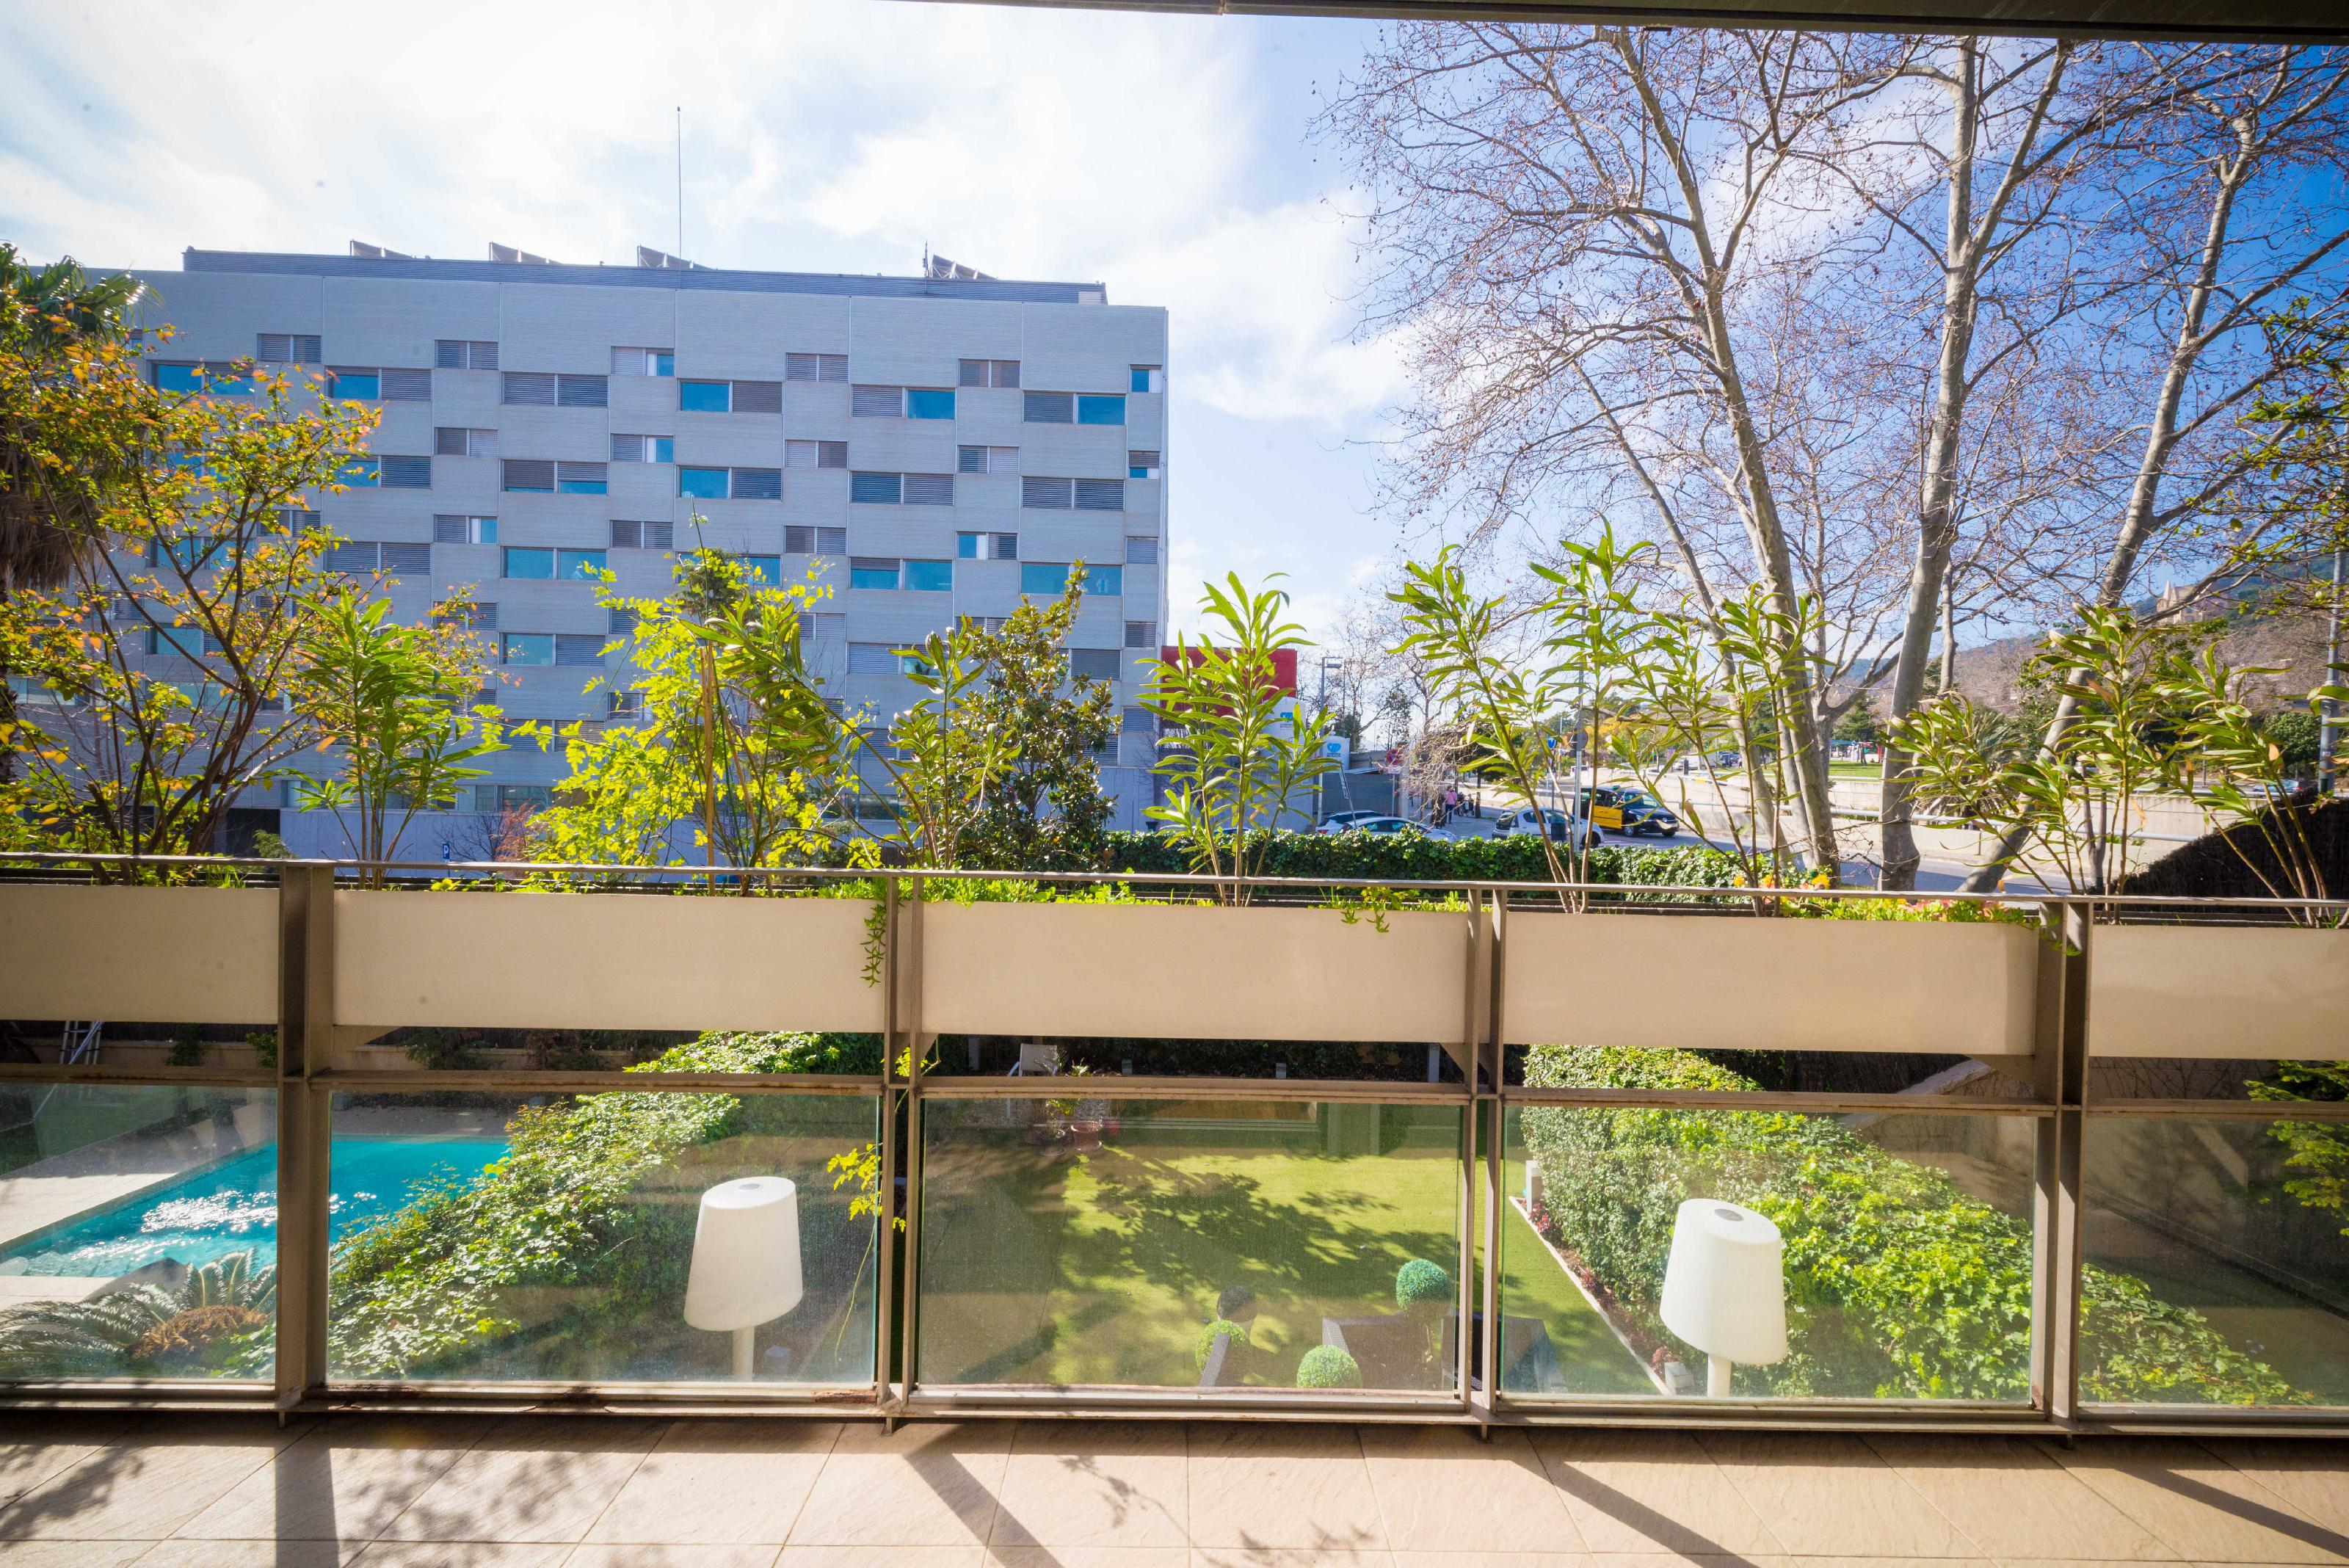 246682 Flat for sale in Gràcia, Vallcarca and Els Penitents 3